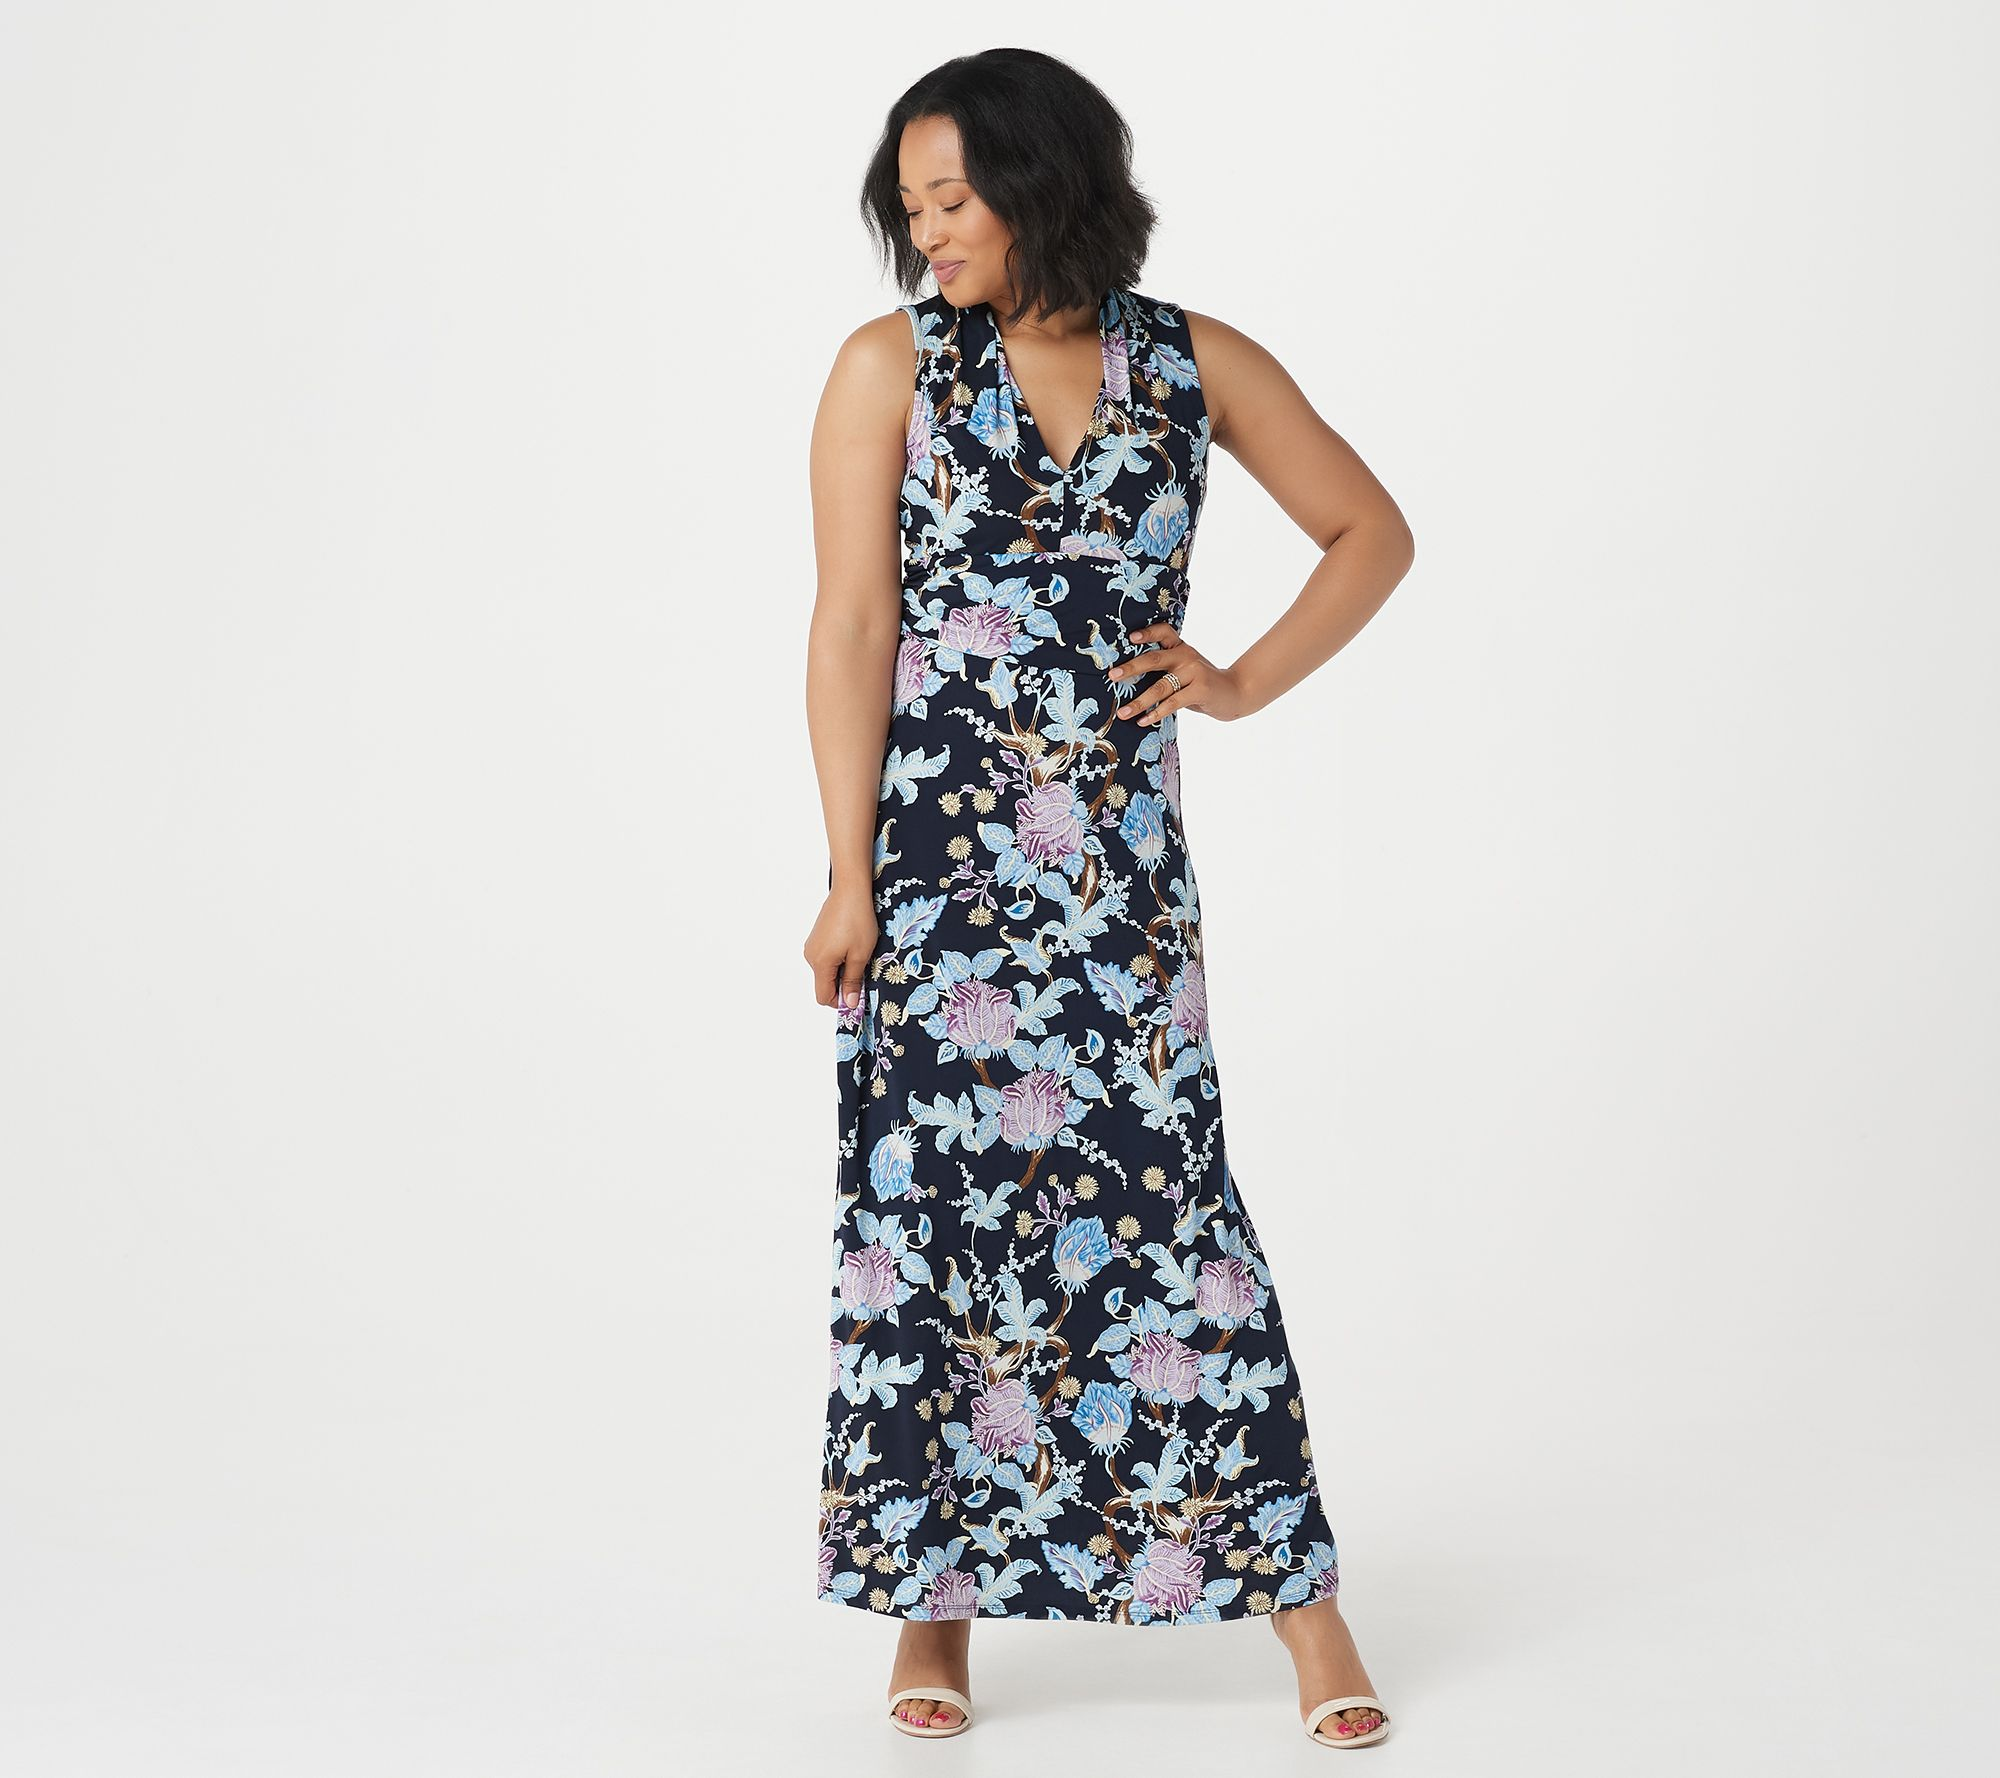 430cf3179fd6 Vince Camuto Poetic Blooms Halter Maxi Dress - Page 1 — QVC.com